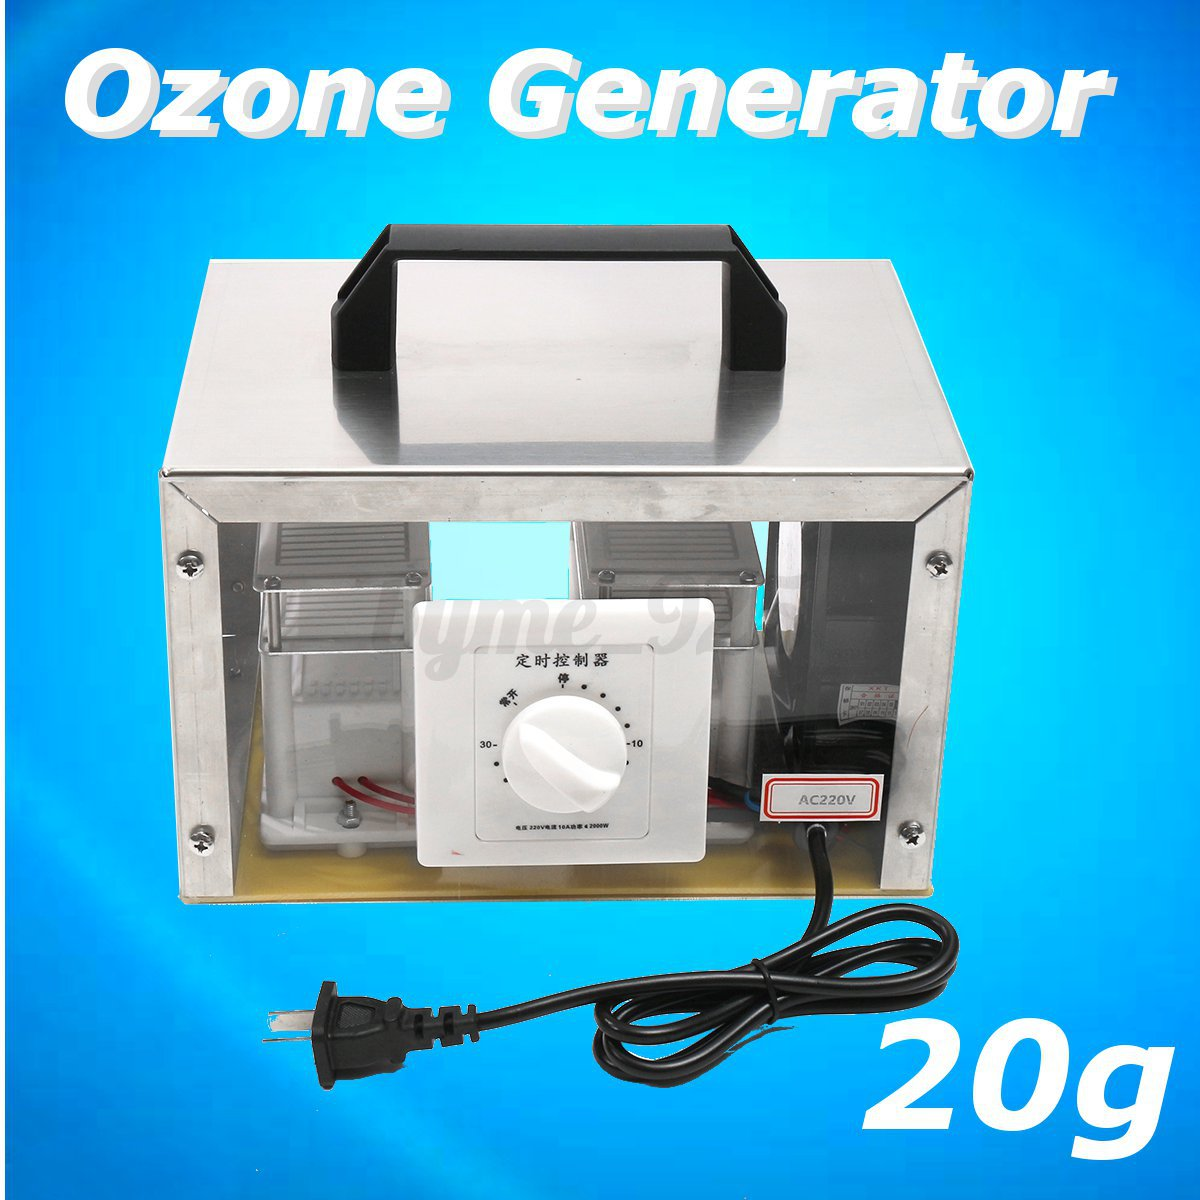 20g Ozone Generator Ozone Disinfection Machine Home Air Purifier 220V U